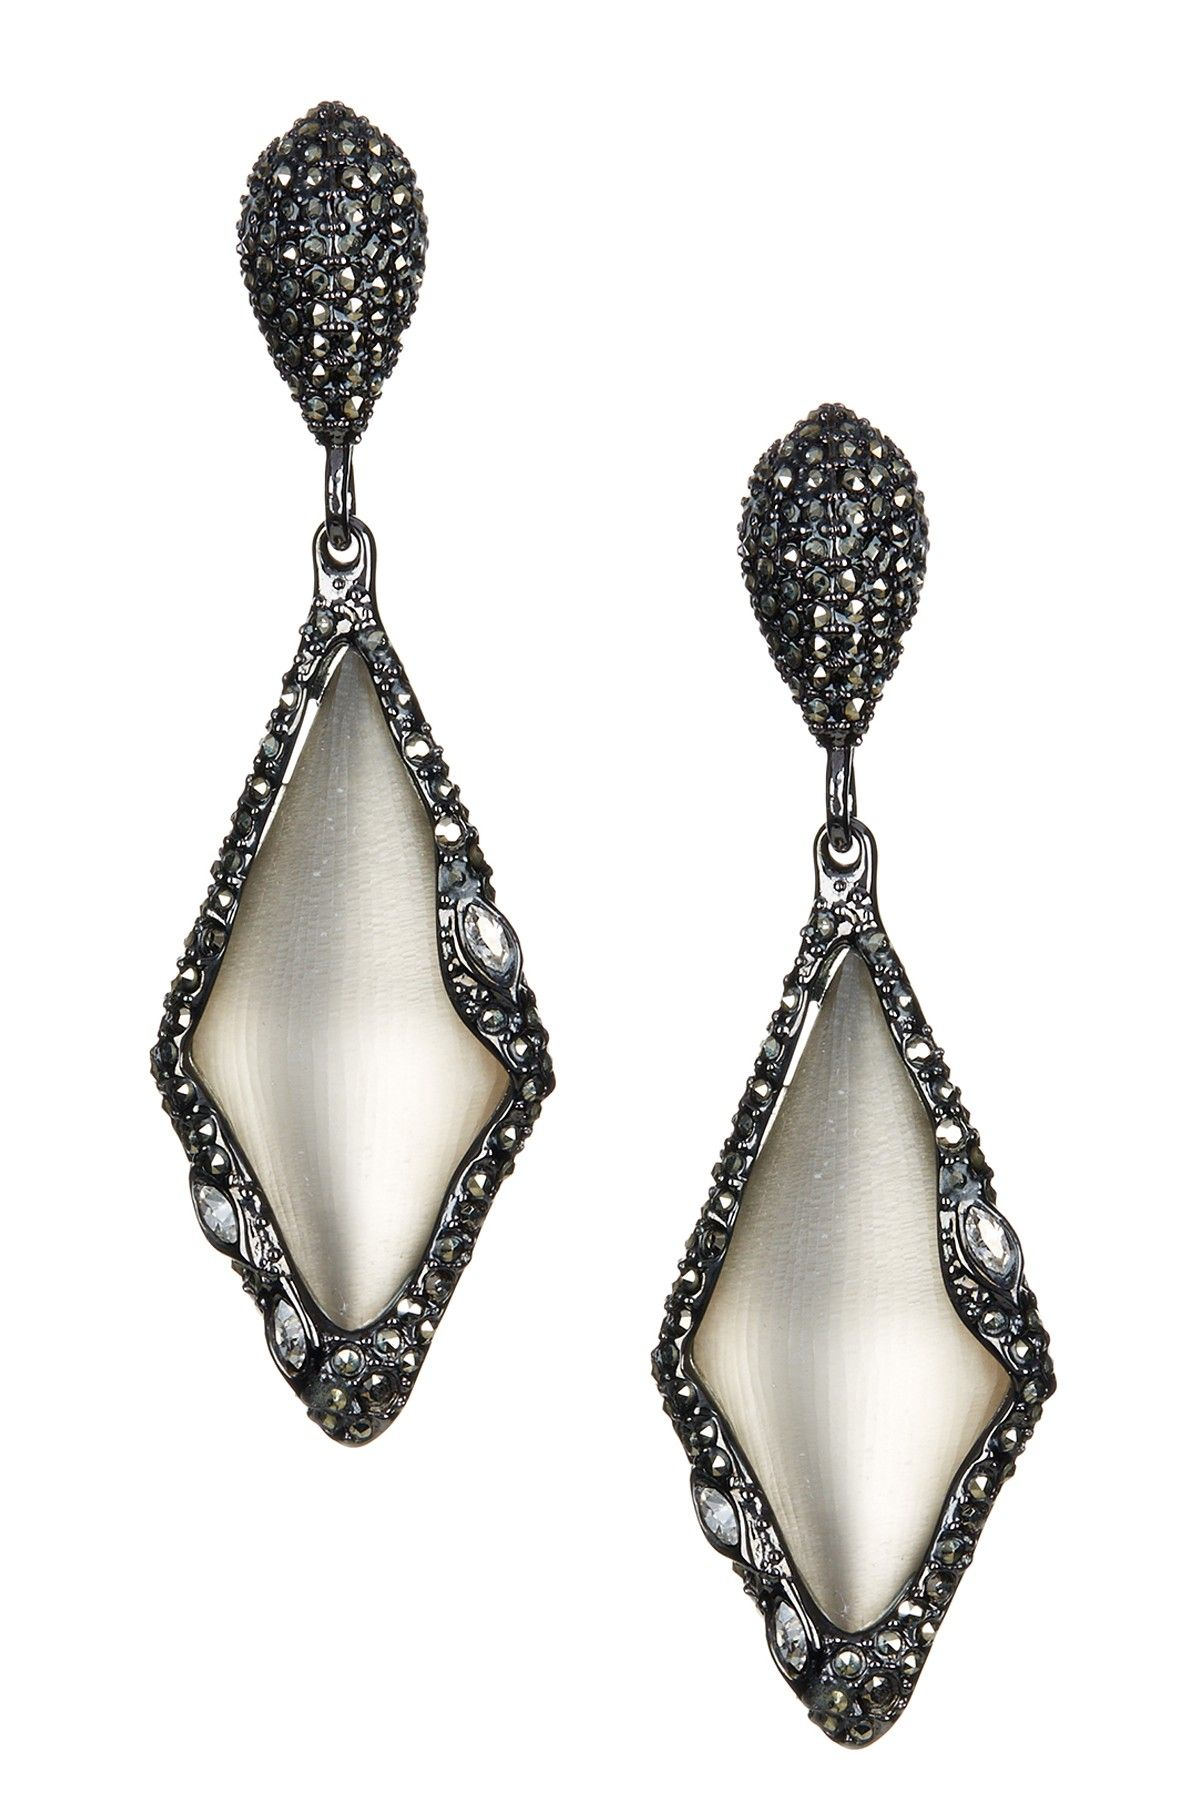 Pin By Melesia Boyer On Jewelry Pinterest Alexis Bittar Kites And Drop Earrings